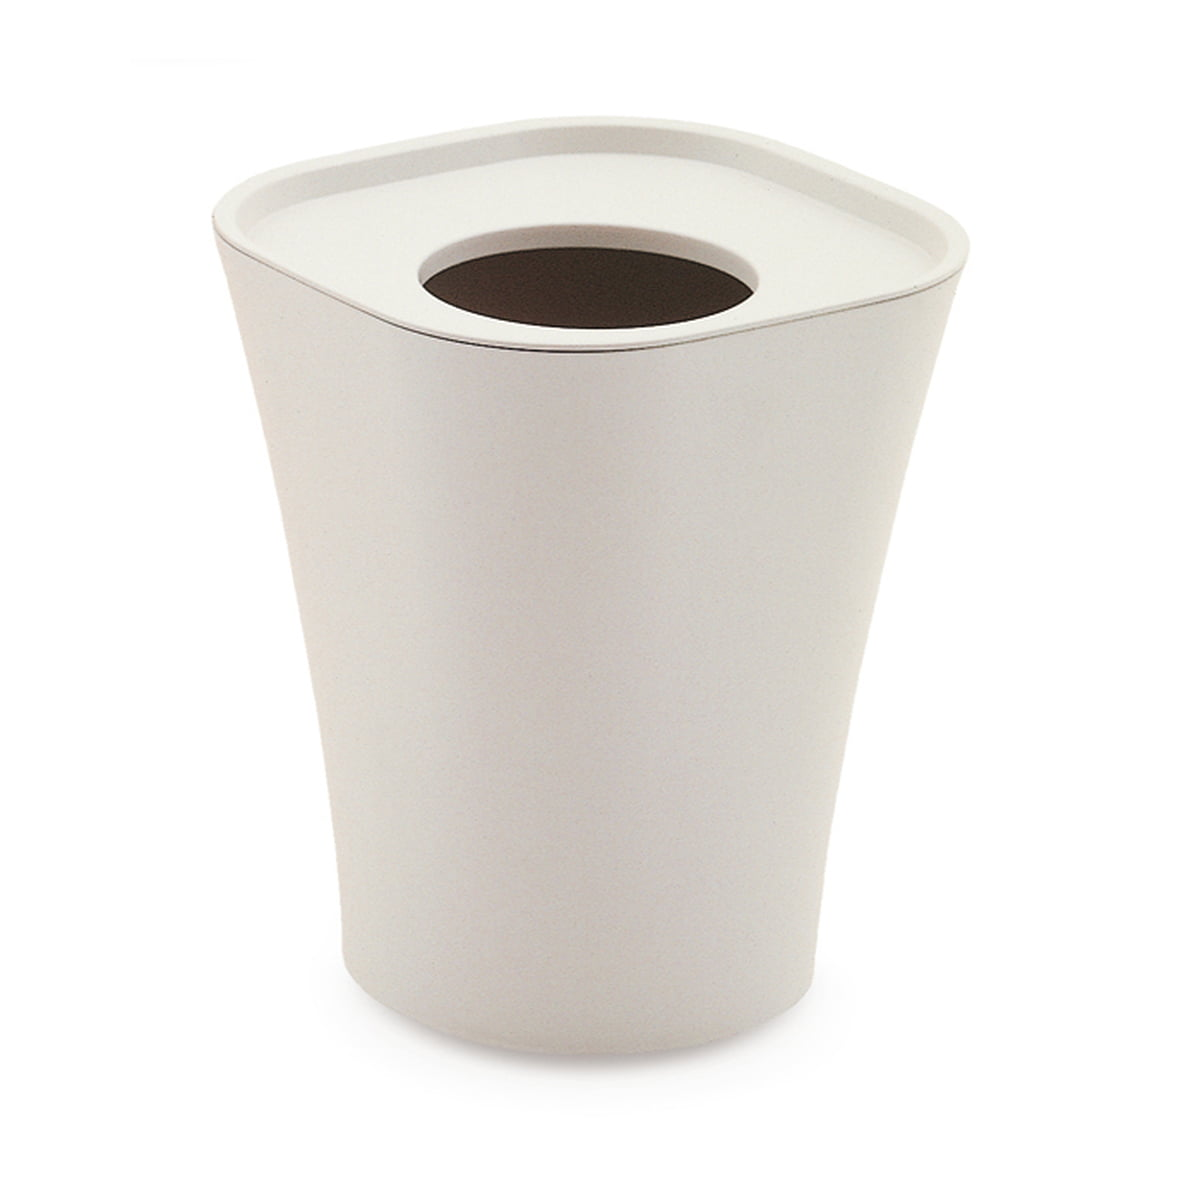 Wastepaper Basket Captivating Trash Wastepaper Basket  Magis  Connox Shop Inspiration